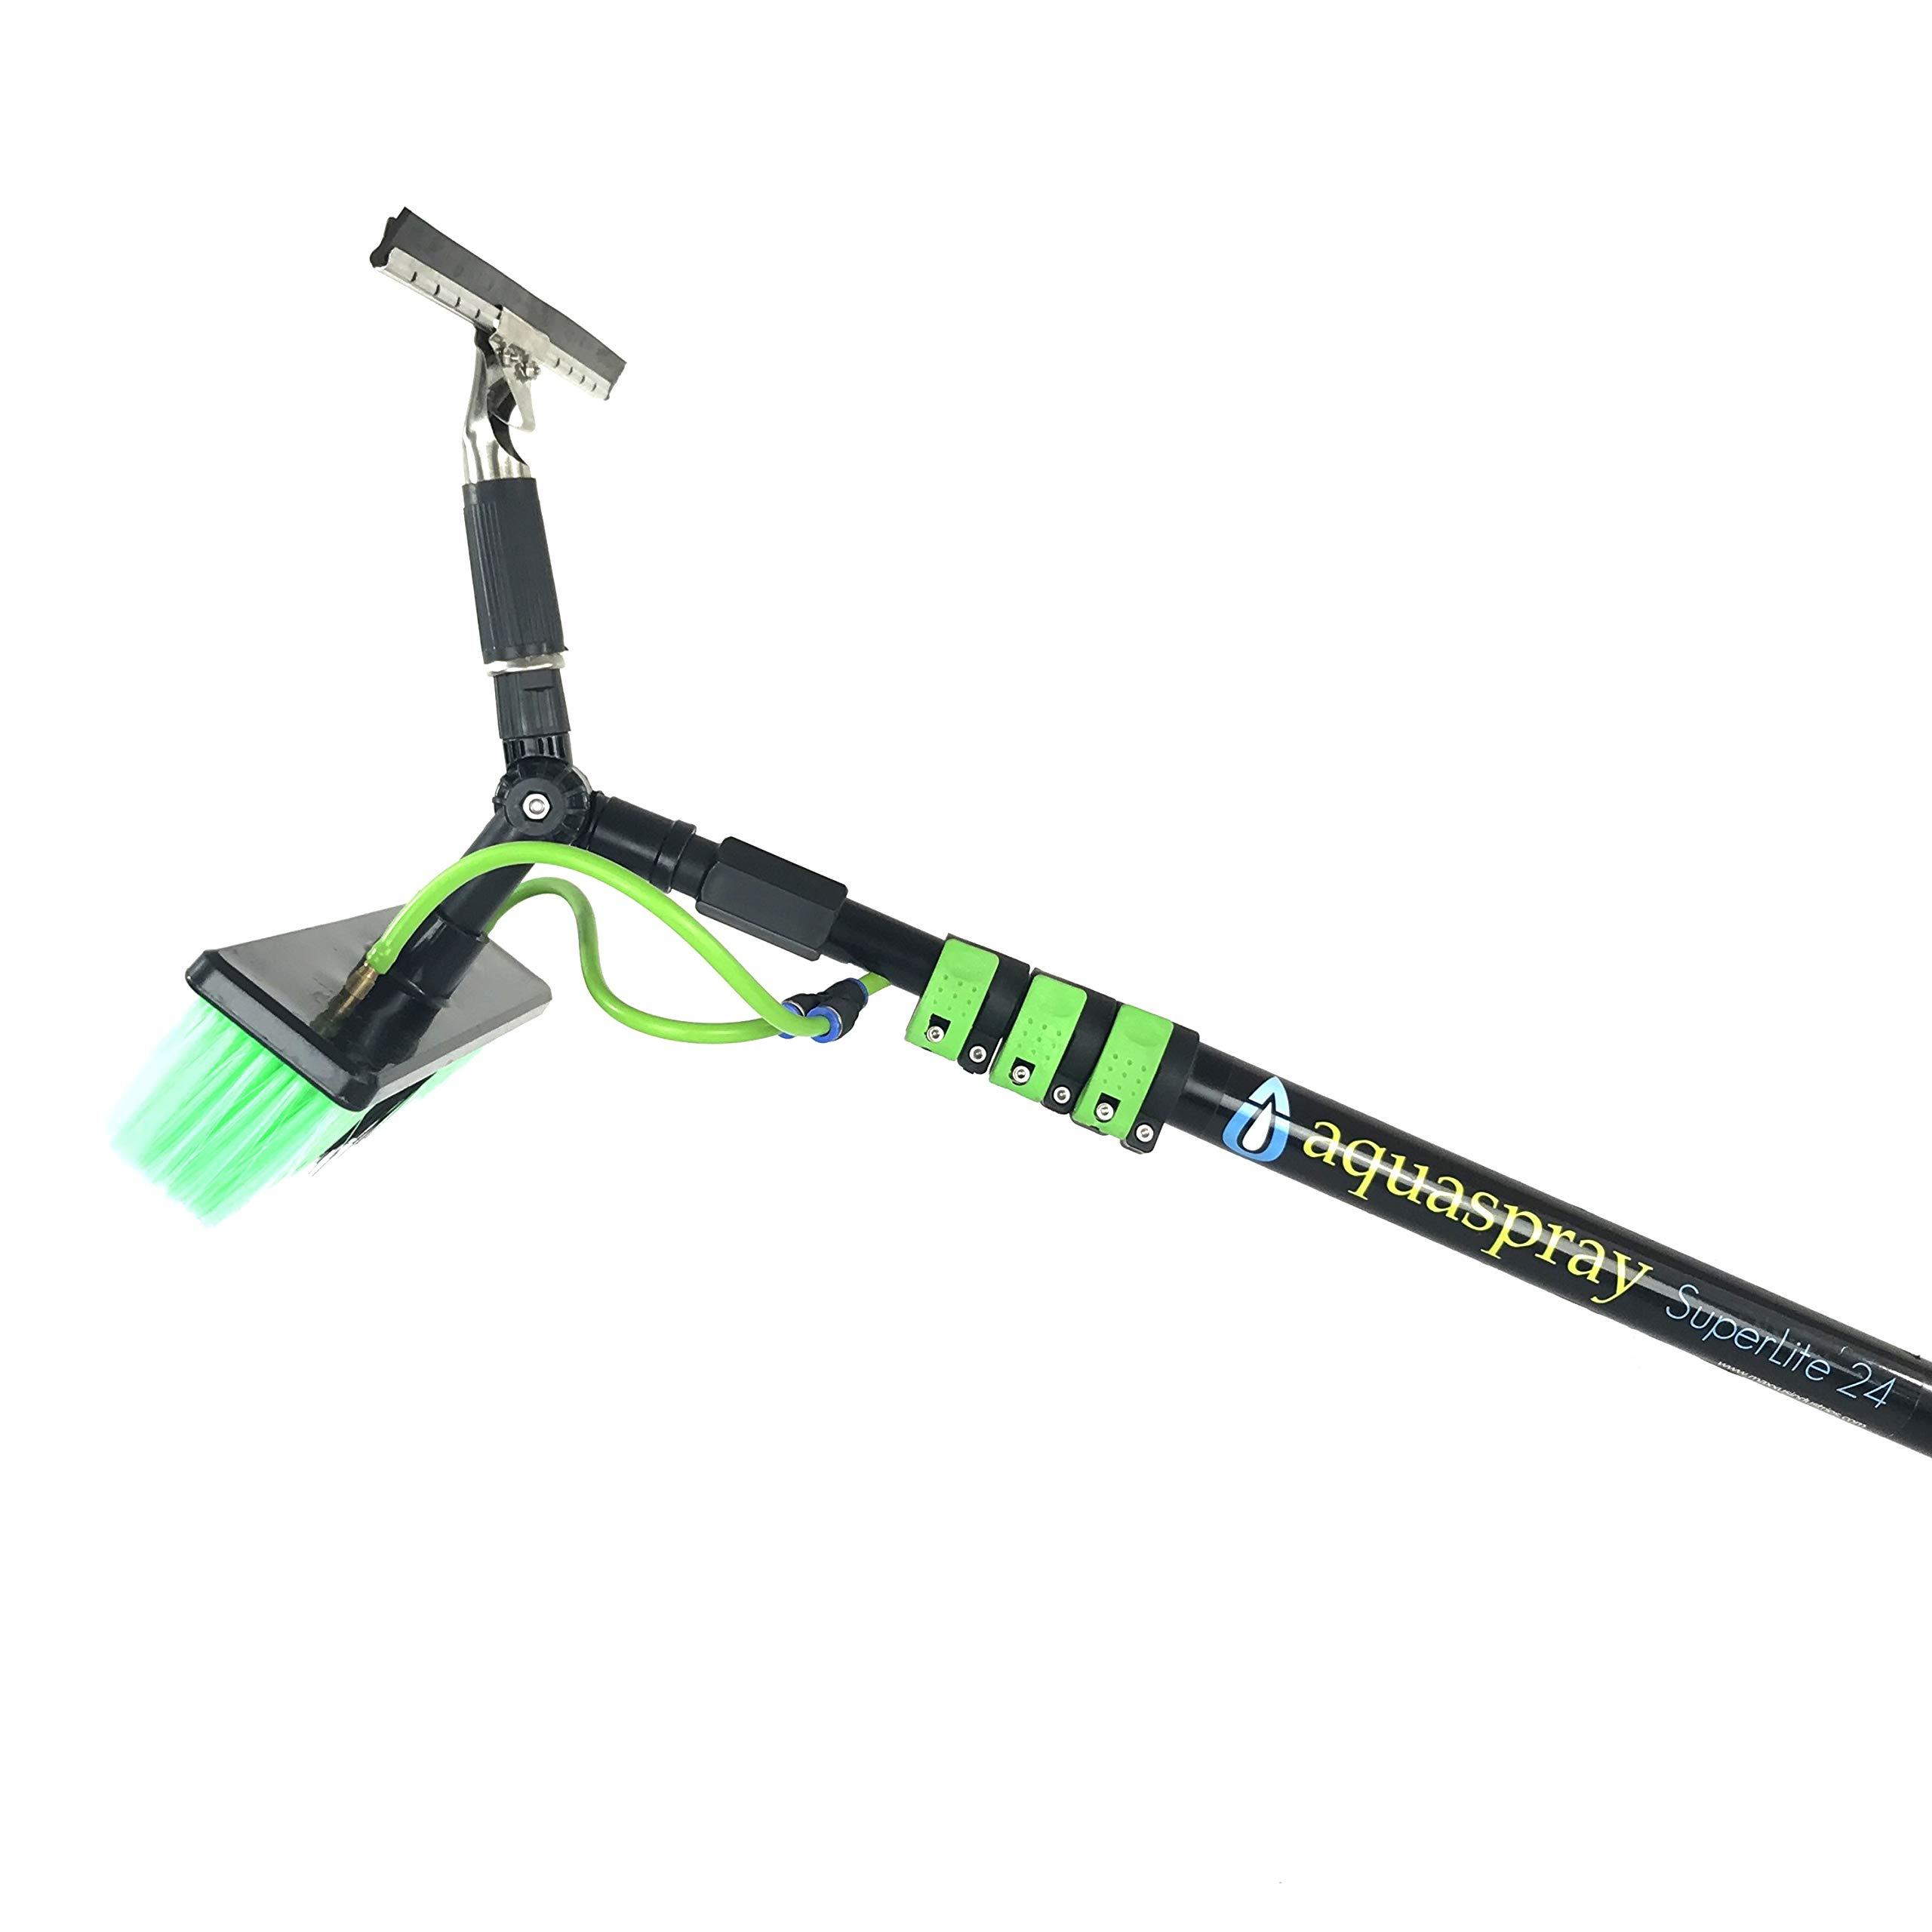 30 ft Water Fed Pole, Window & Solar Panel Cleaning Tool with Brush & Squeegee AquaSpray by EquipMaxx